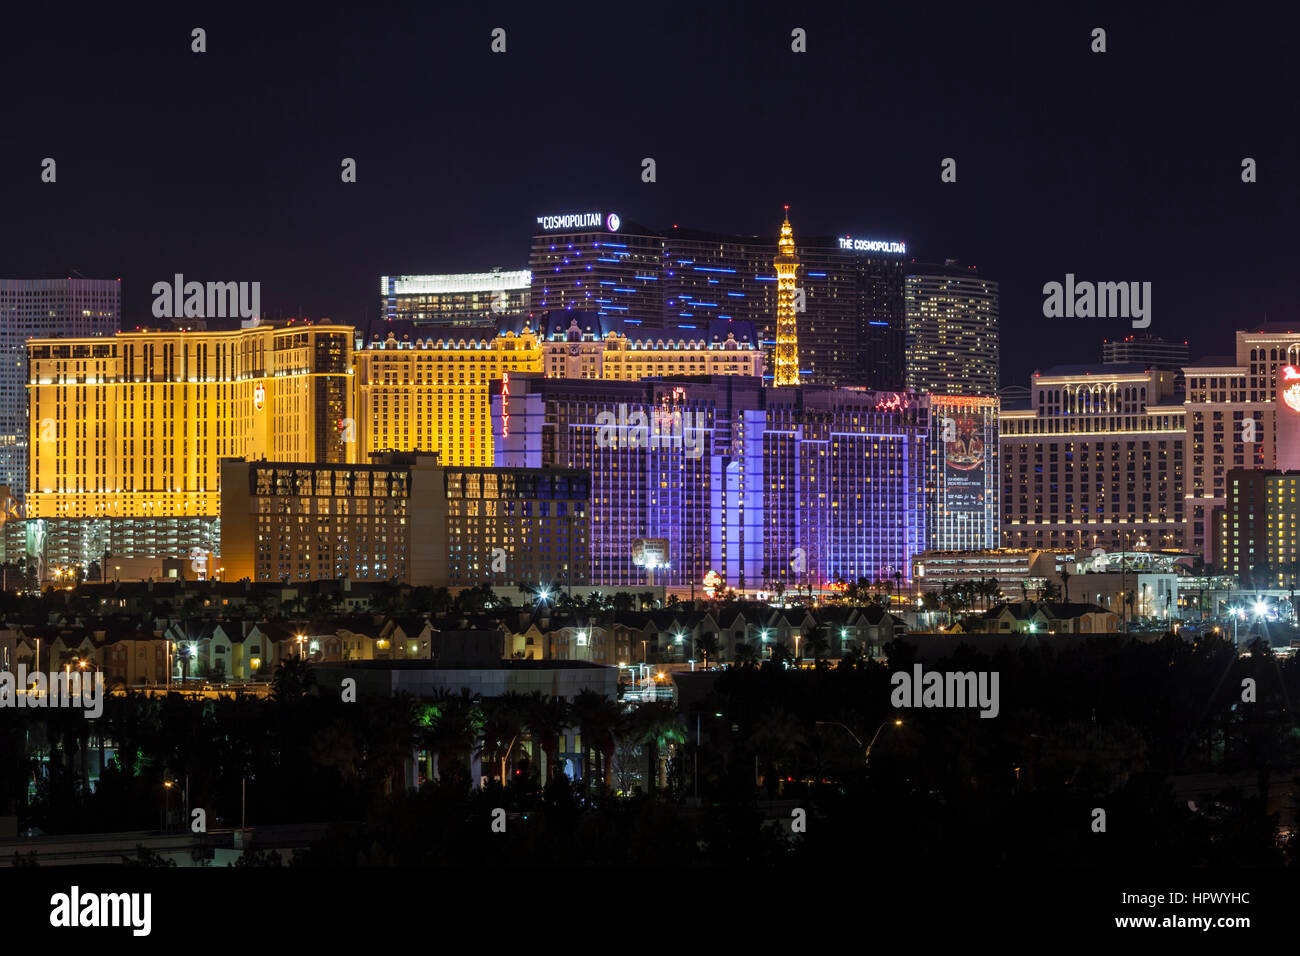 Editorial night view of Cosmopolitan, Ballys, Paris and other casino resorts on the Las Vegas strip. Stock Photo